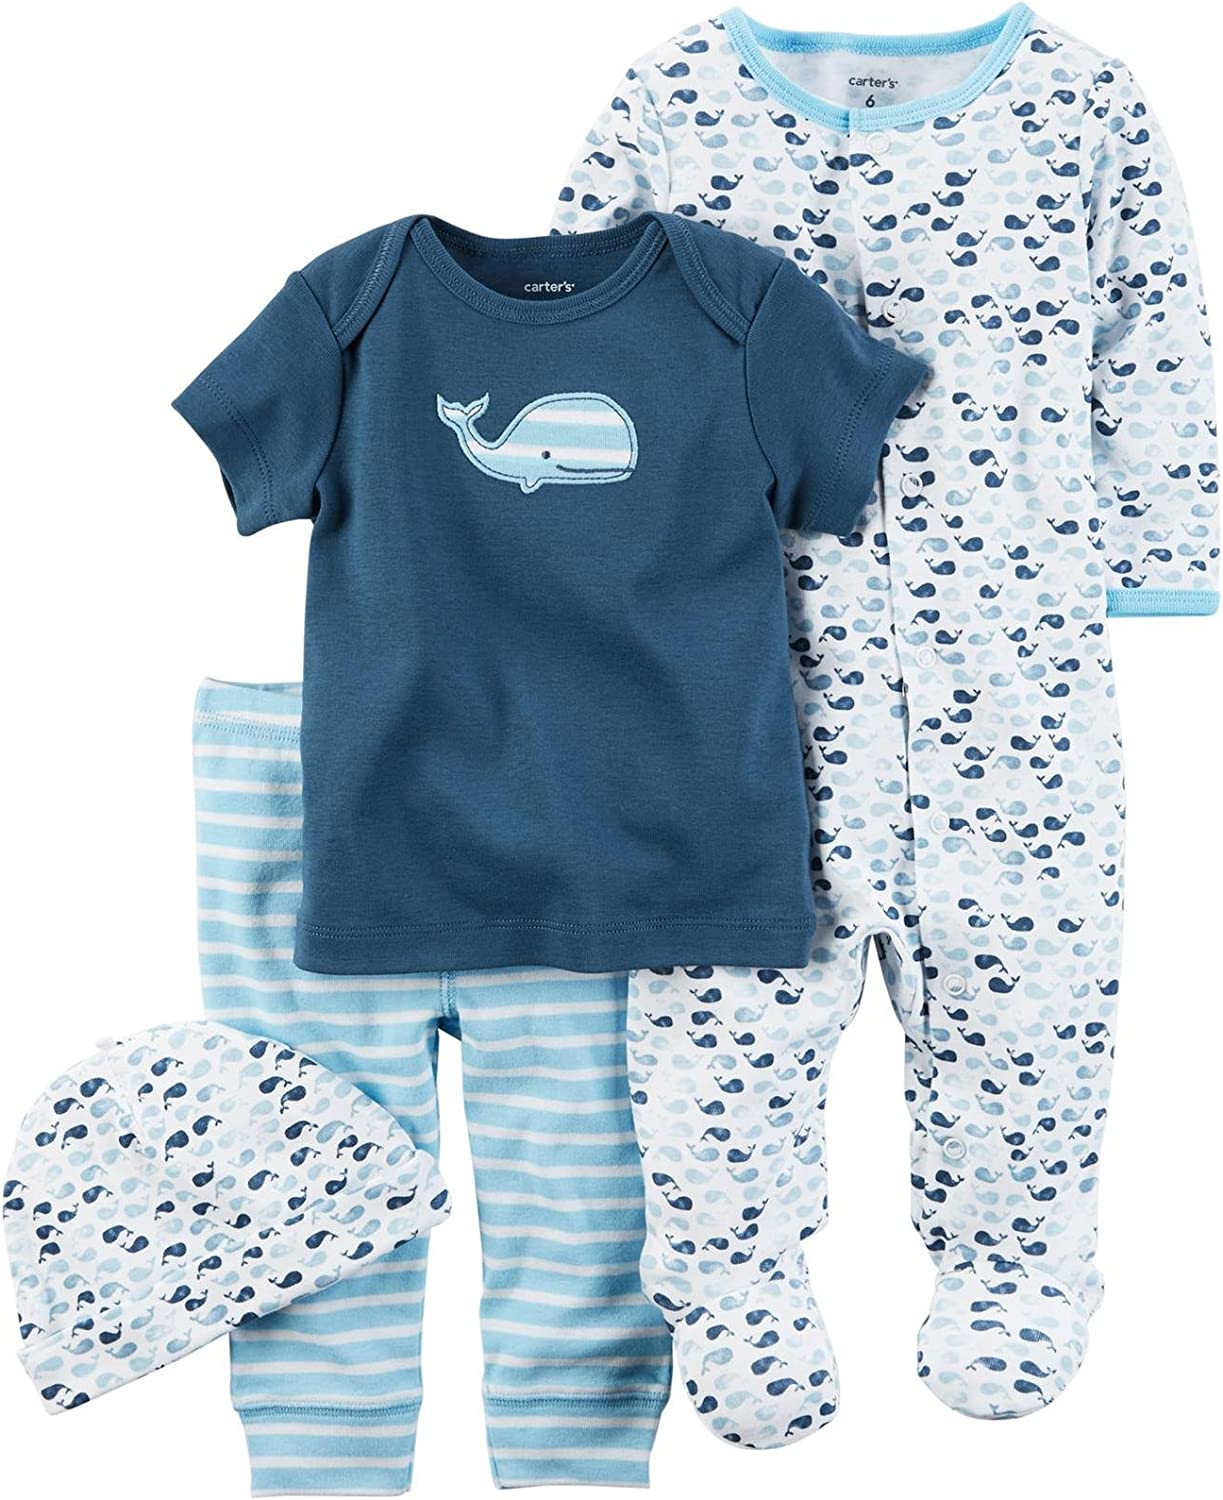 Carters Baby Boys Multi-pc Sets 126g585